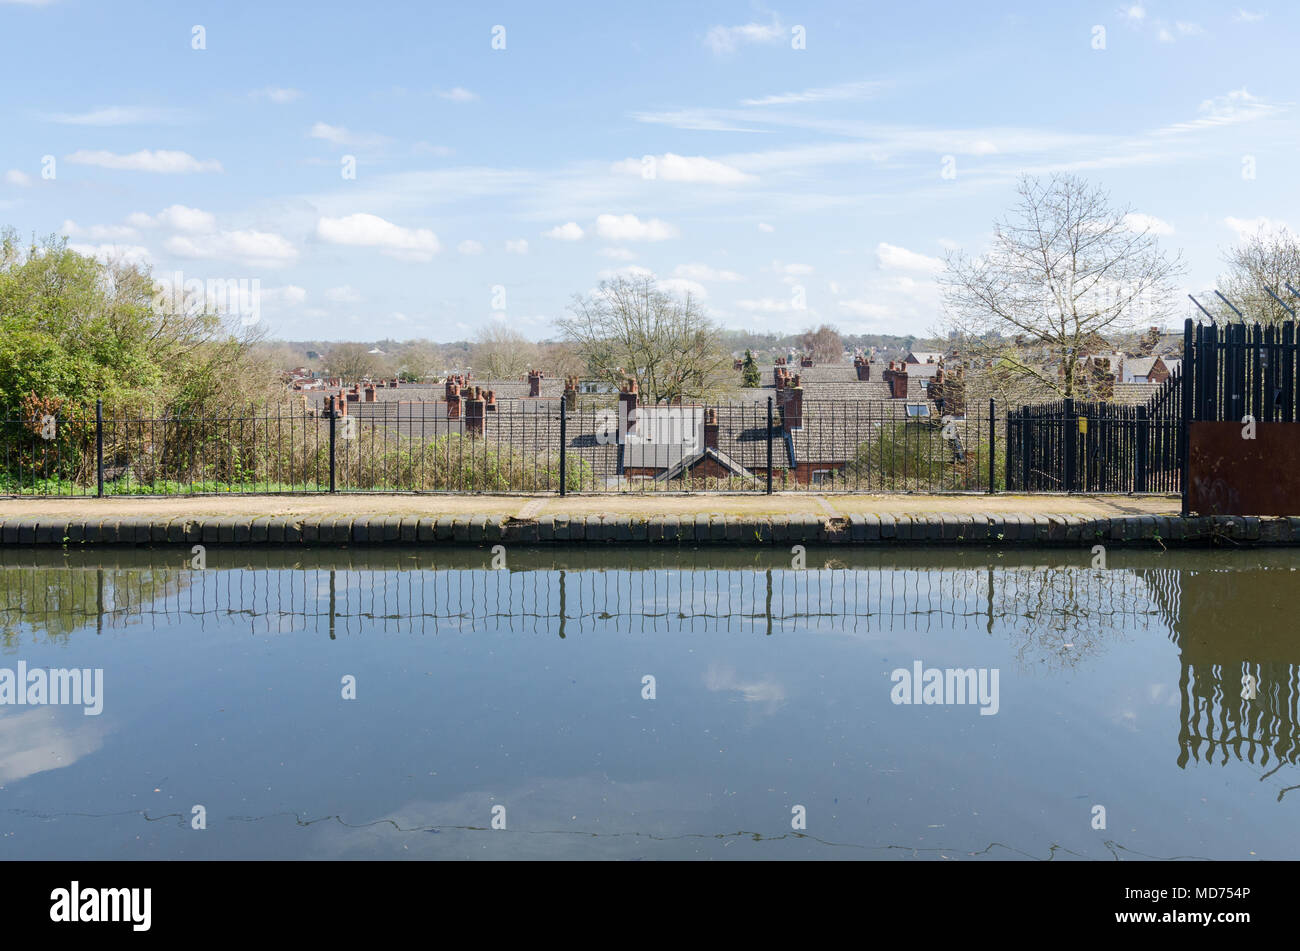 Rooftops visible from the raised Worcester and Birmingham Canal running through Bournville on a sunny day - Stock Image